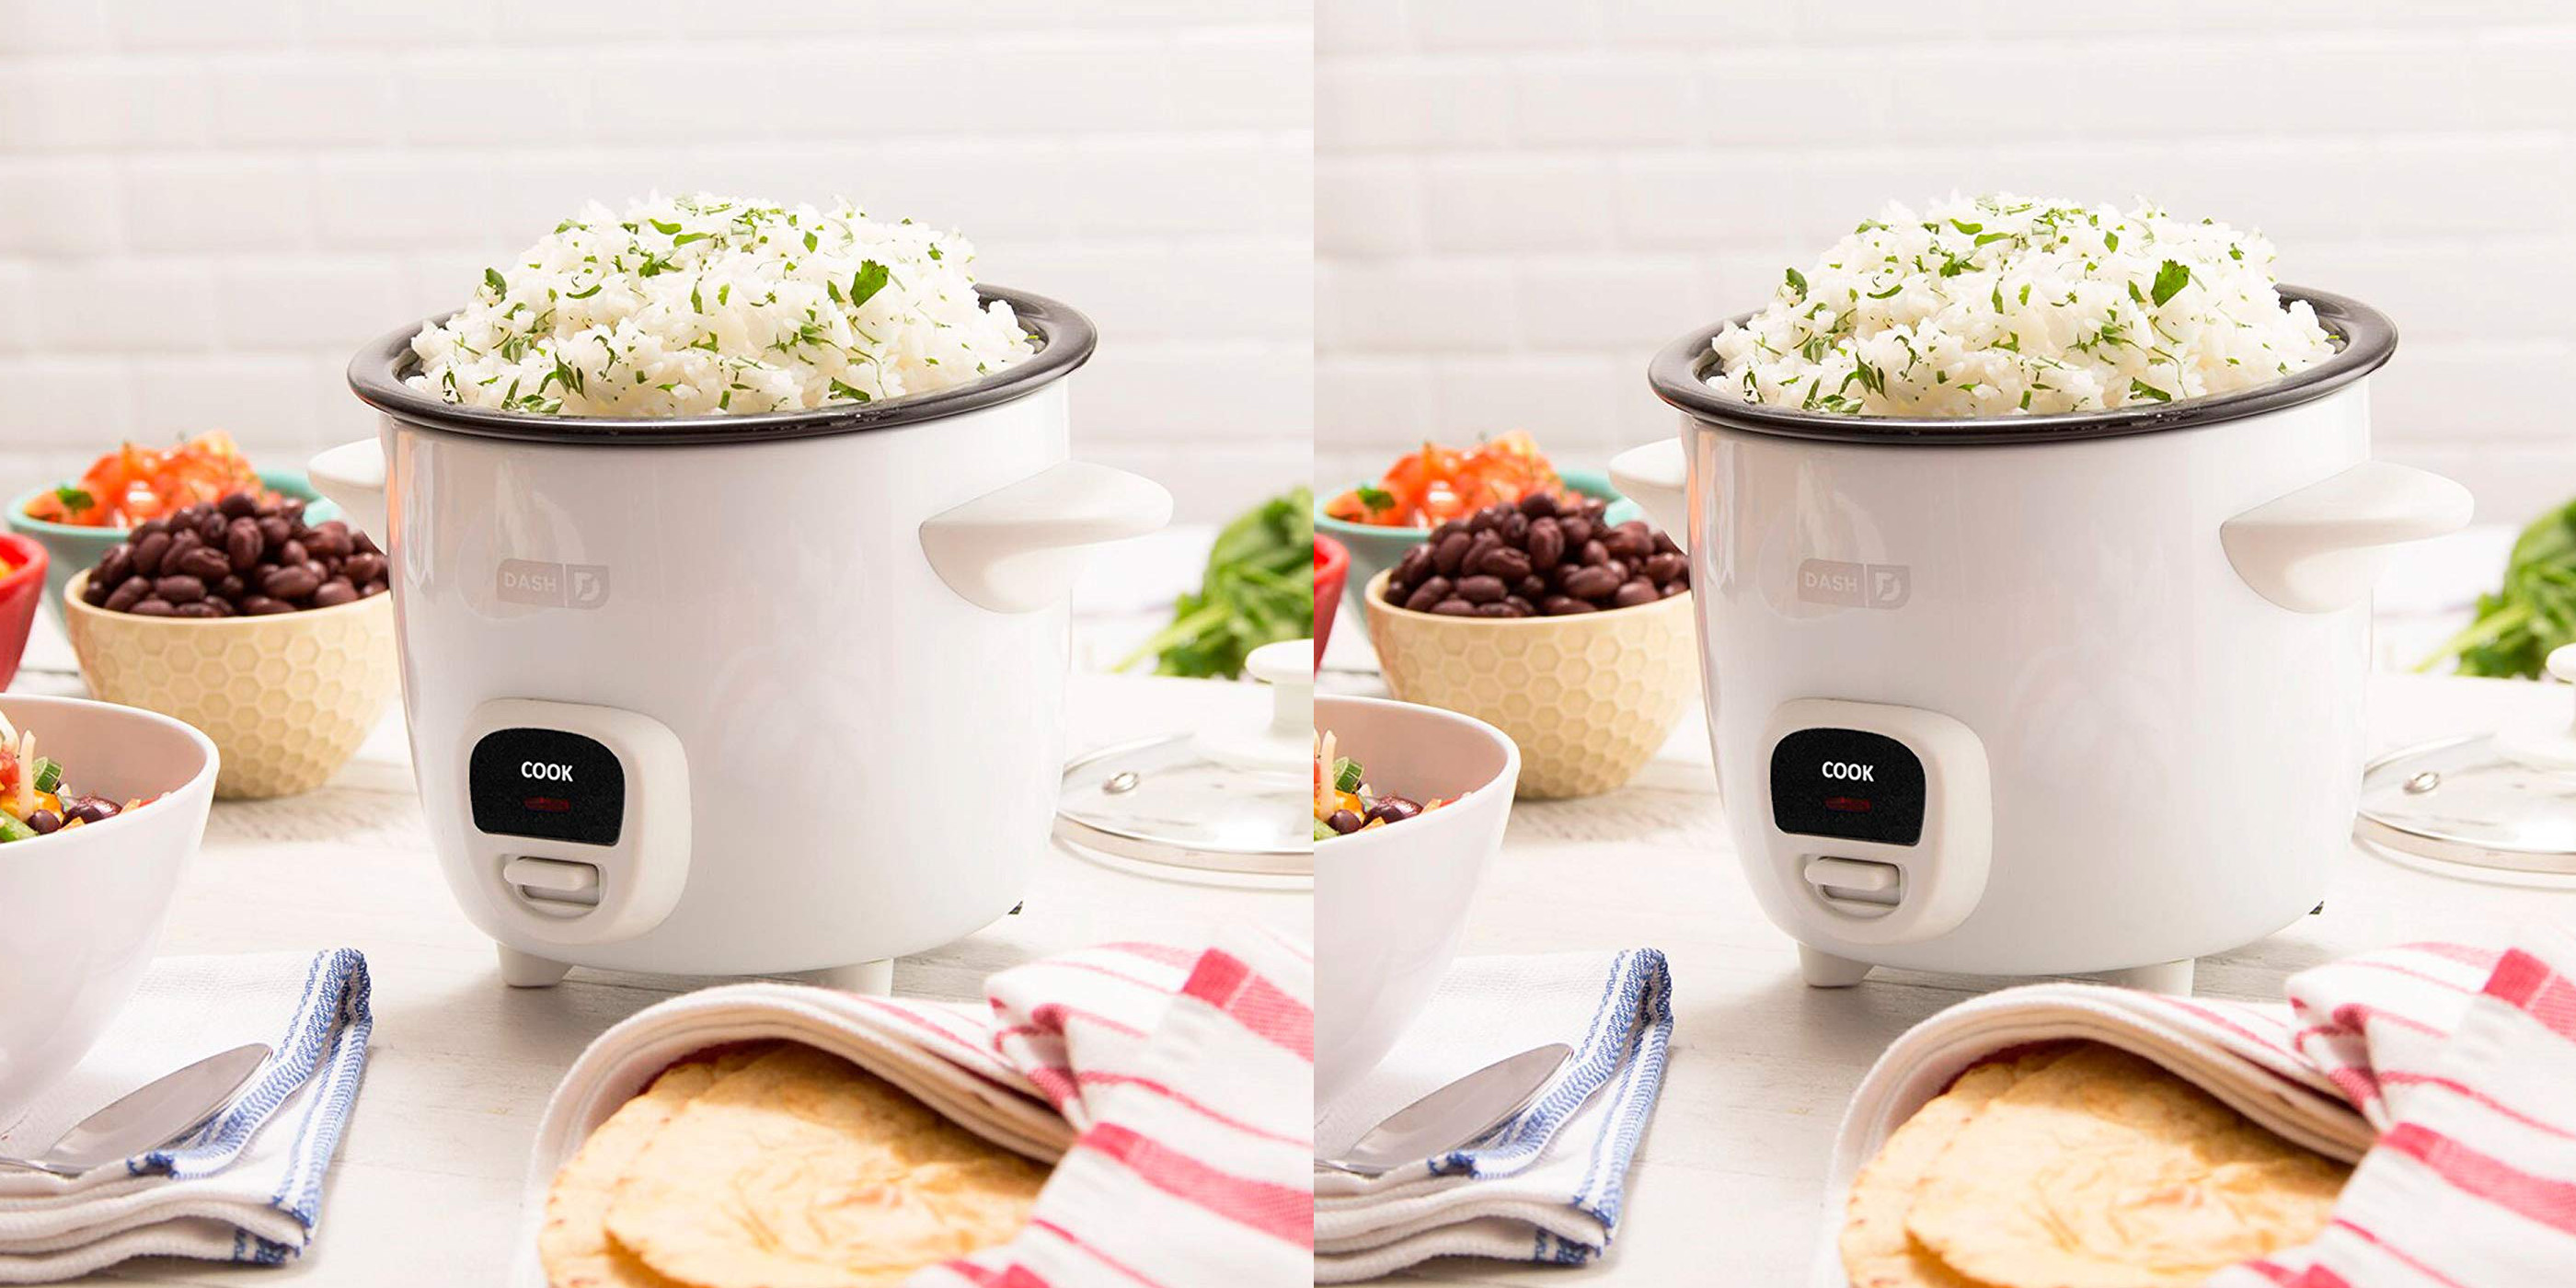 The mini Dash Rice Cooker is down to just $15 today at Best Buy (Reg. up to $30)